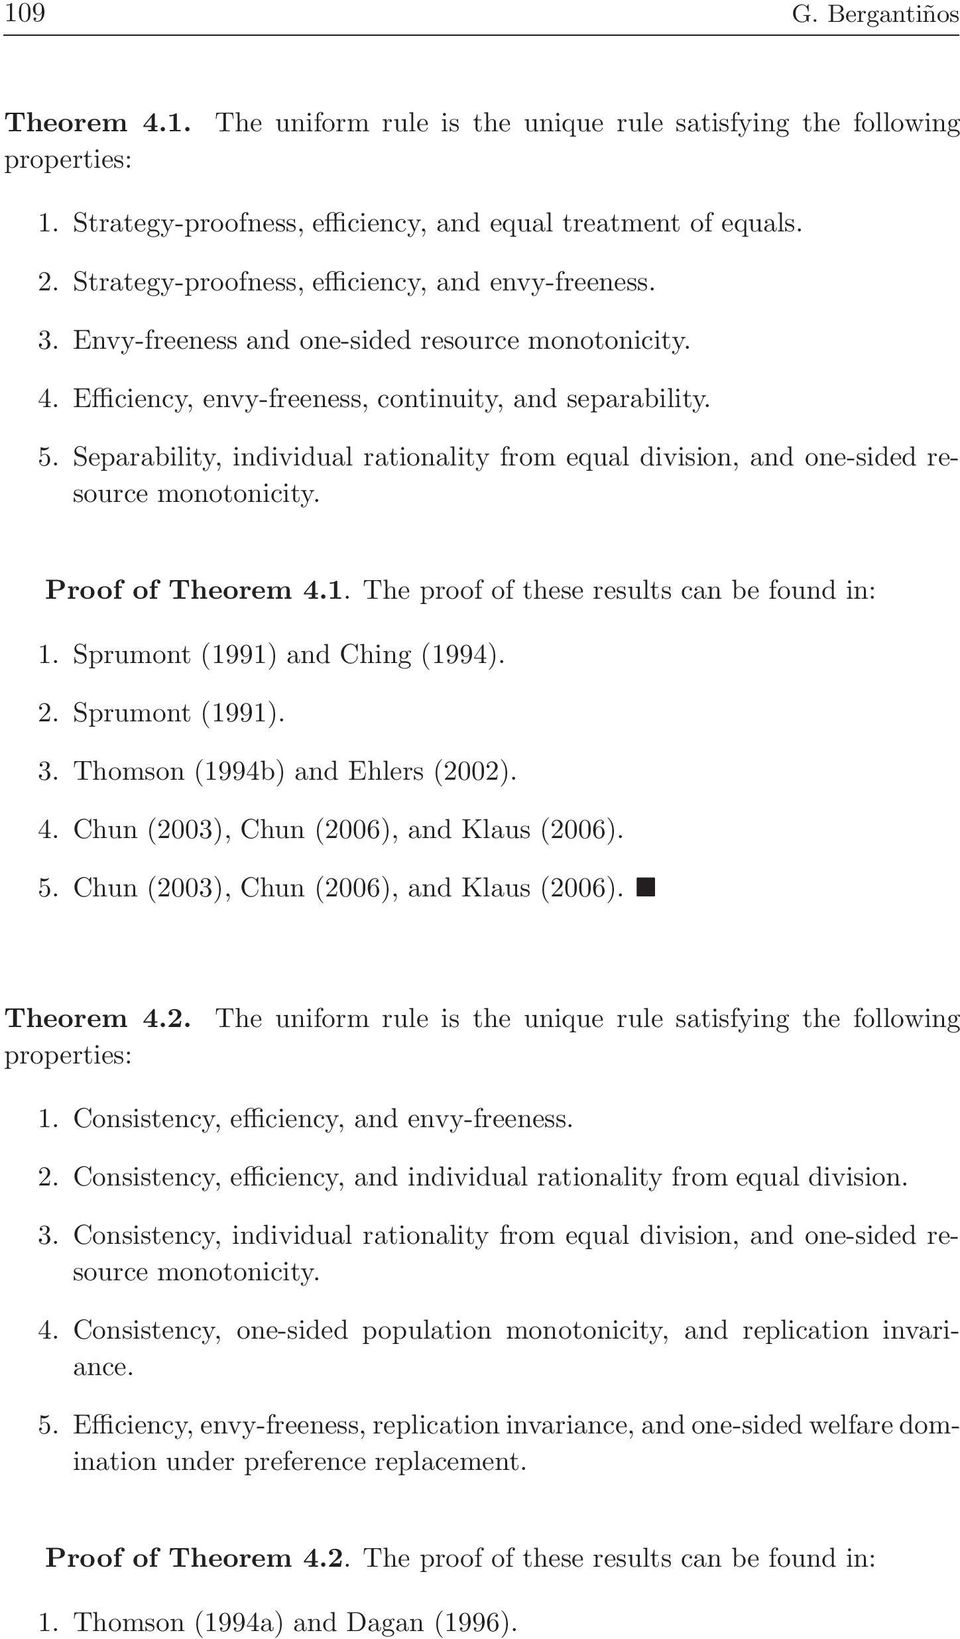 Separability, individual rationality from equal division, and one-sided resource monotonicity. Proof of Theorem 4.1. The proof of these results can be found in: 1. Sprumont (1991) and Ching (1994). 2.